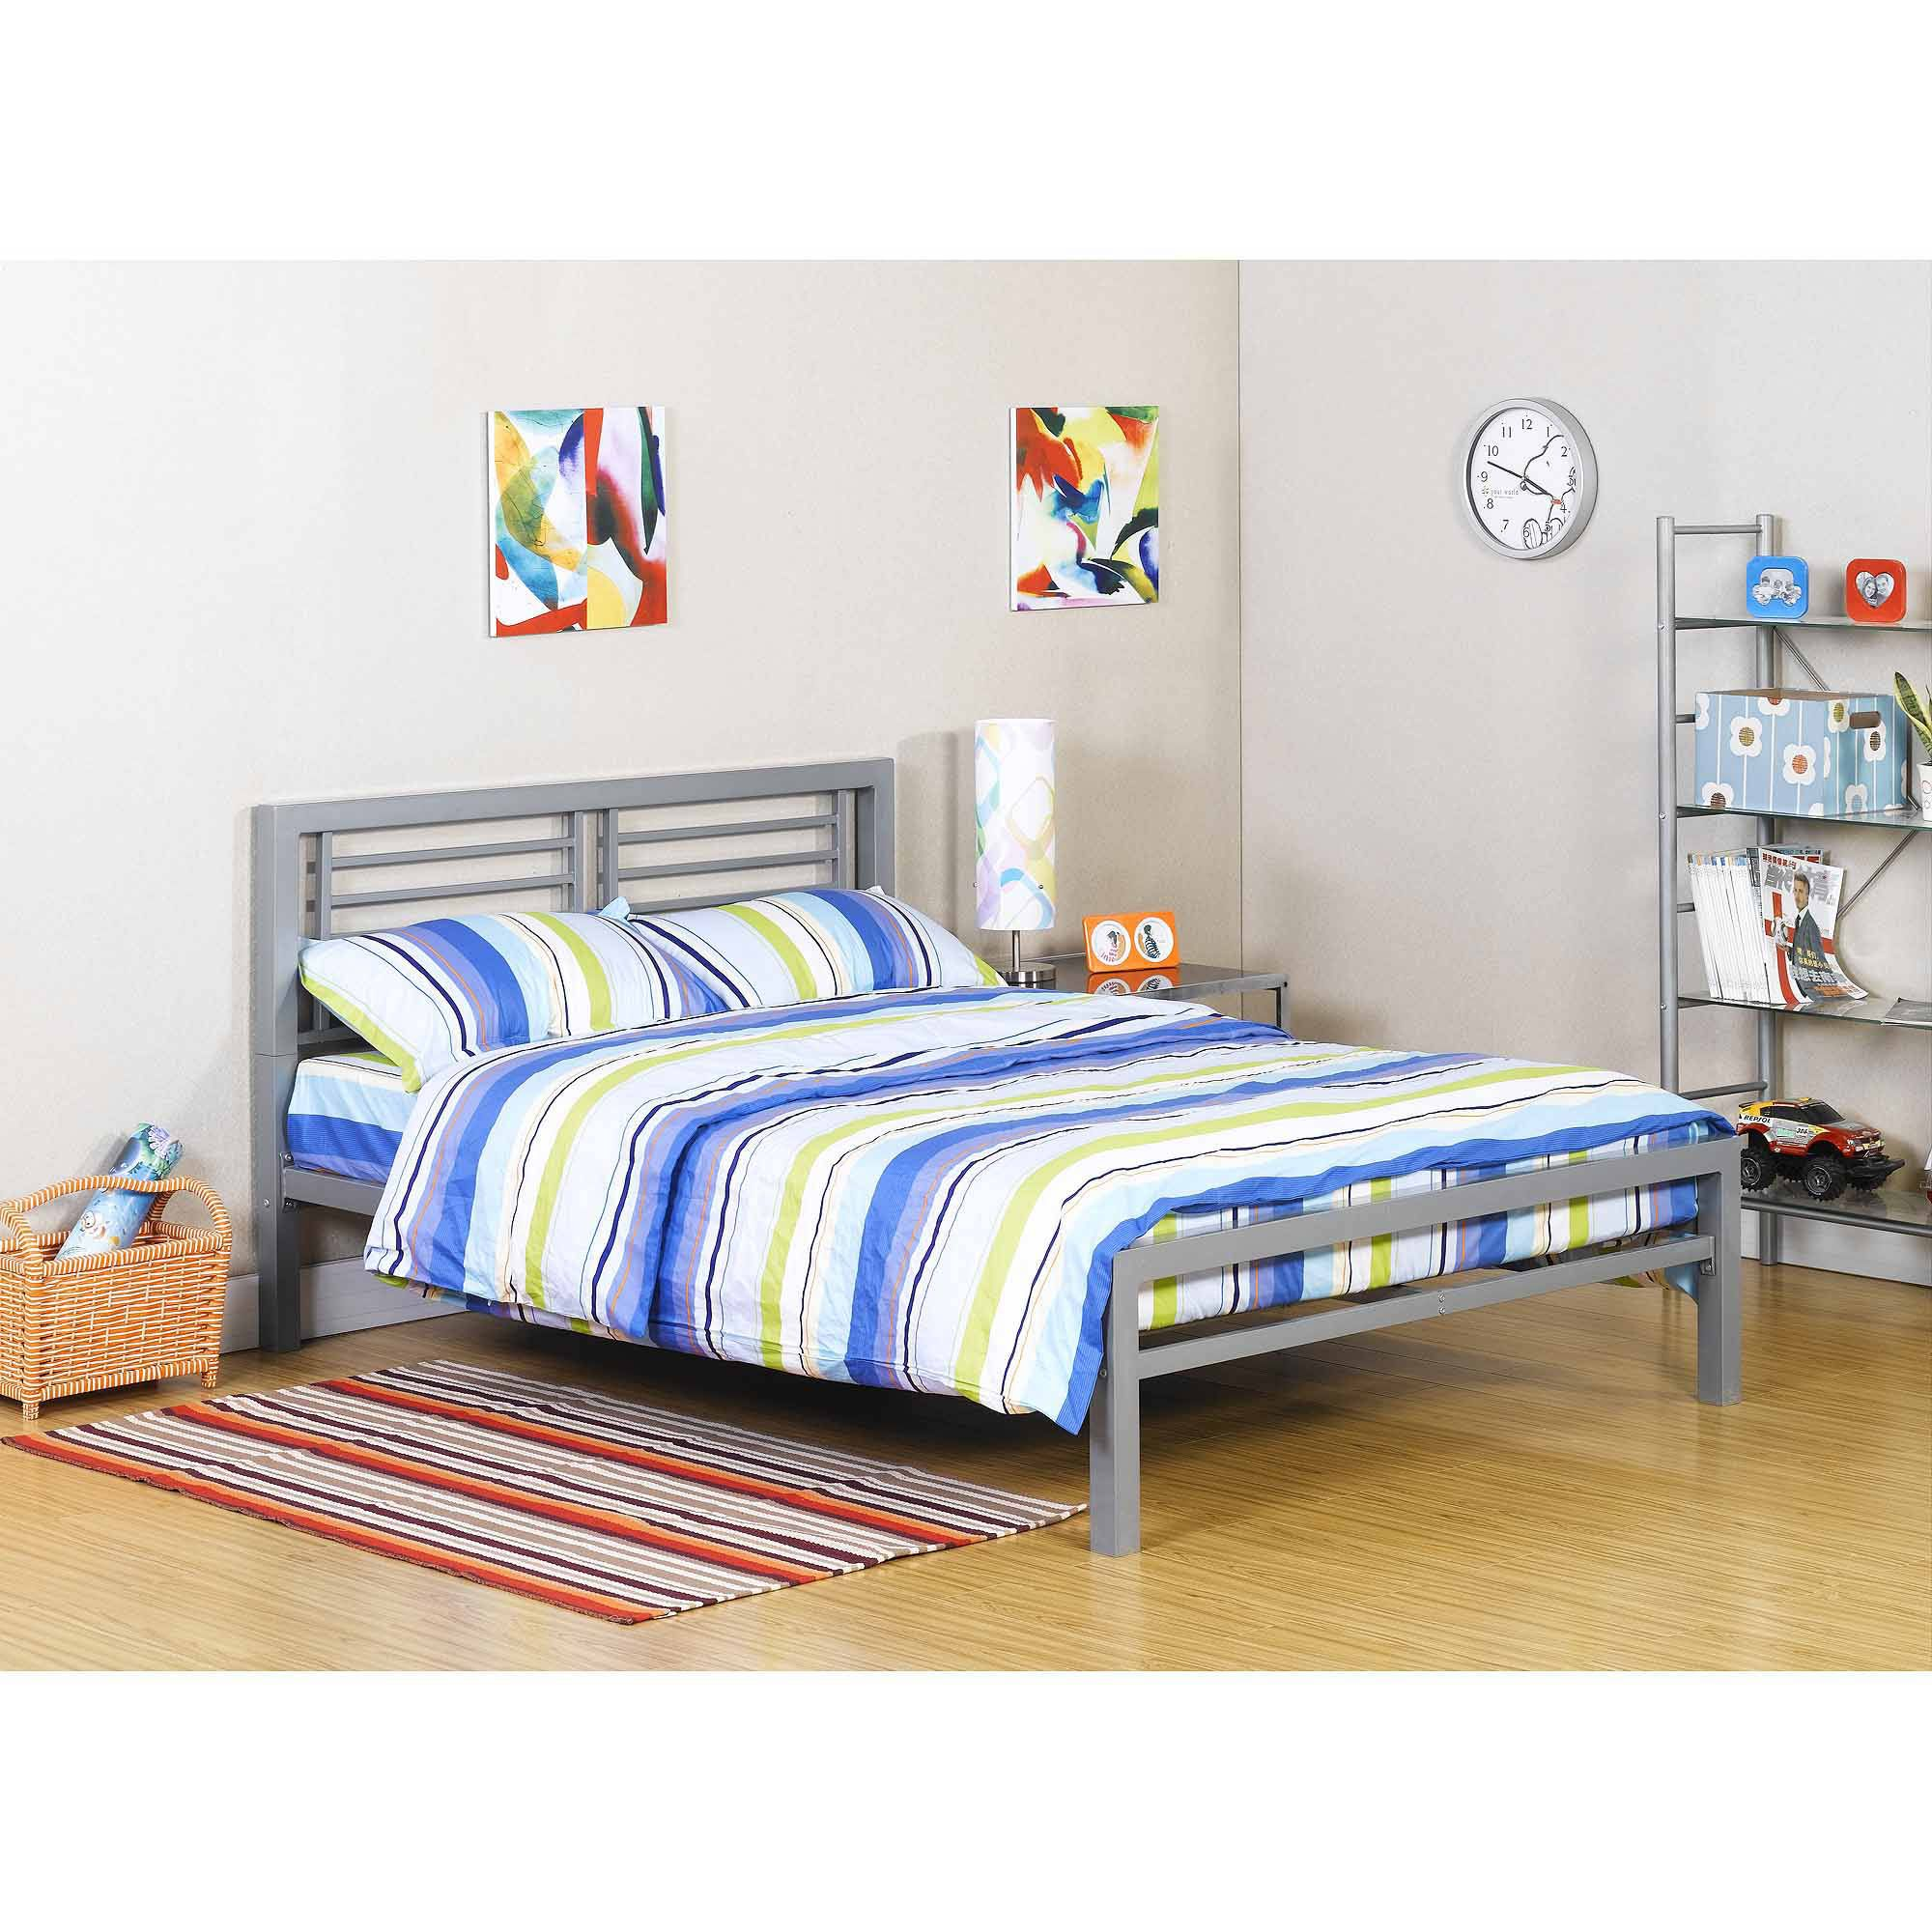 Yourzone Kids Metal Platform Bed Multiple Sizes Multiple Colors